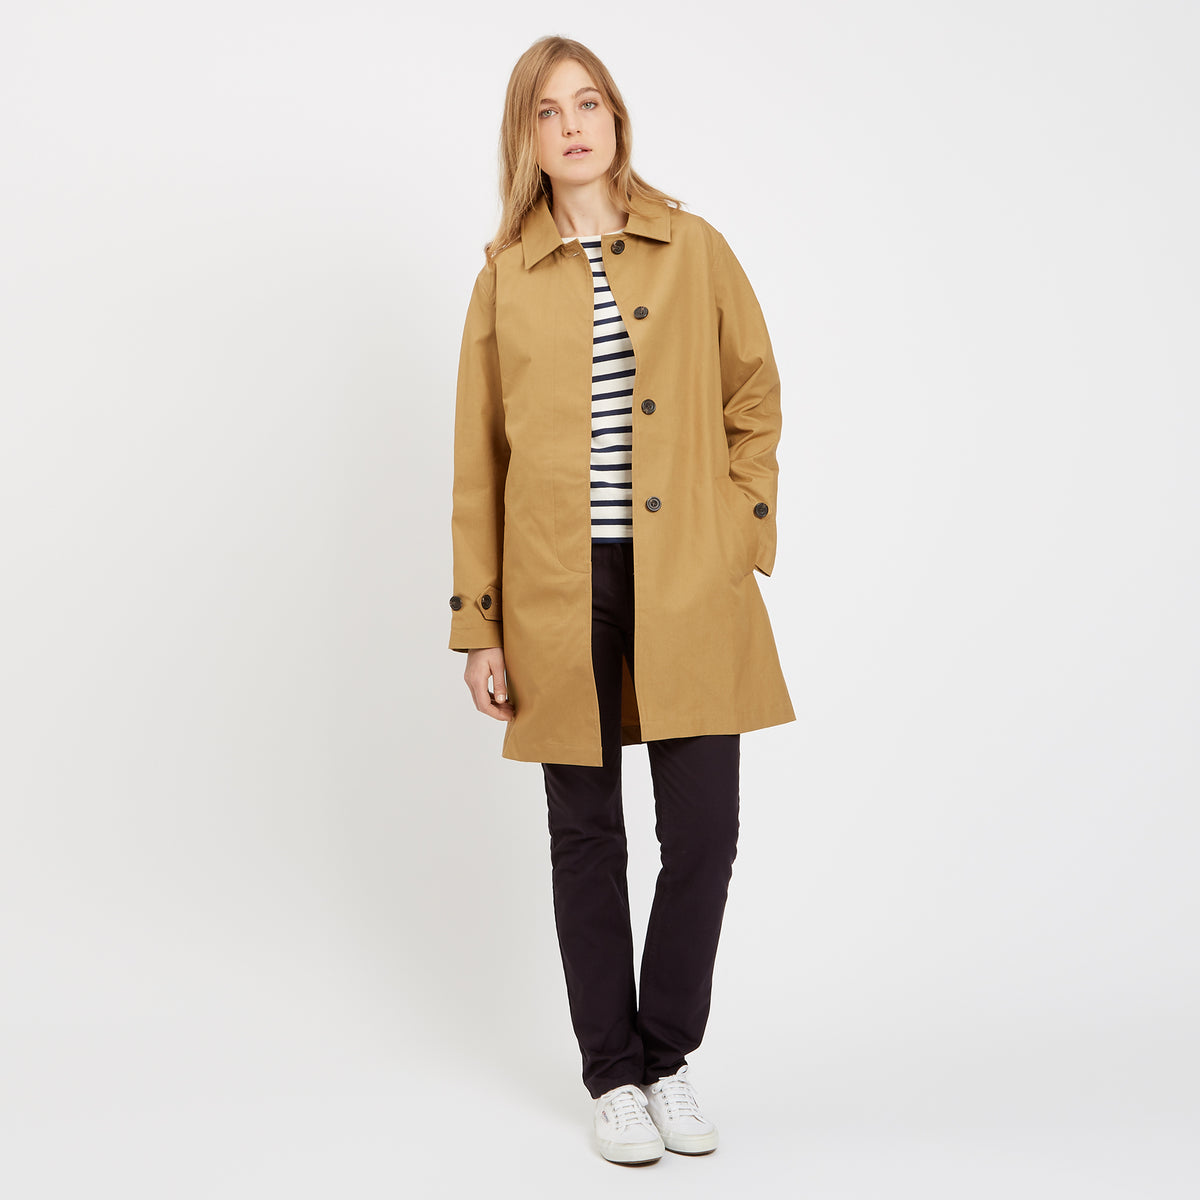 Women's Raincoat Camel - Community Clothing